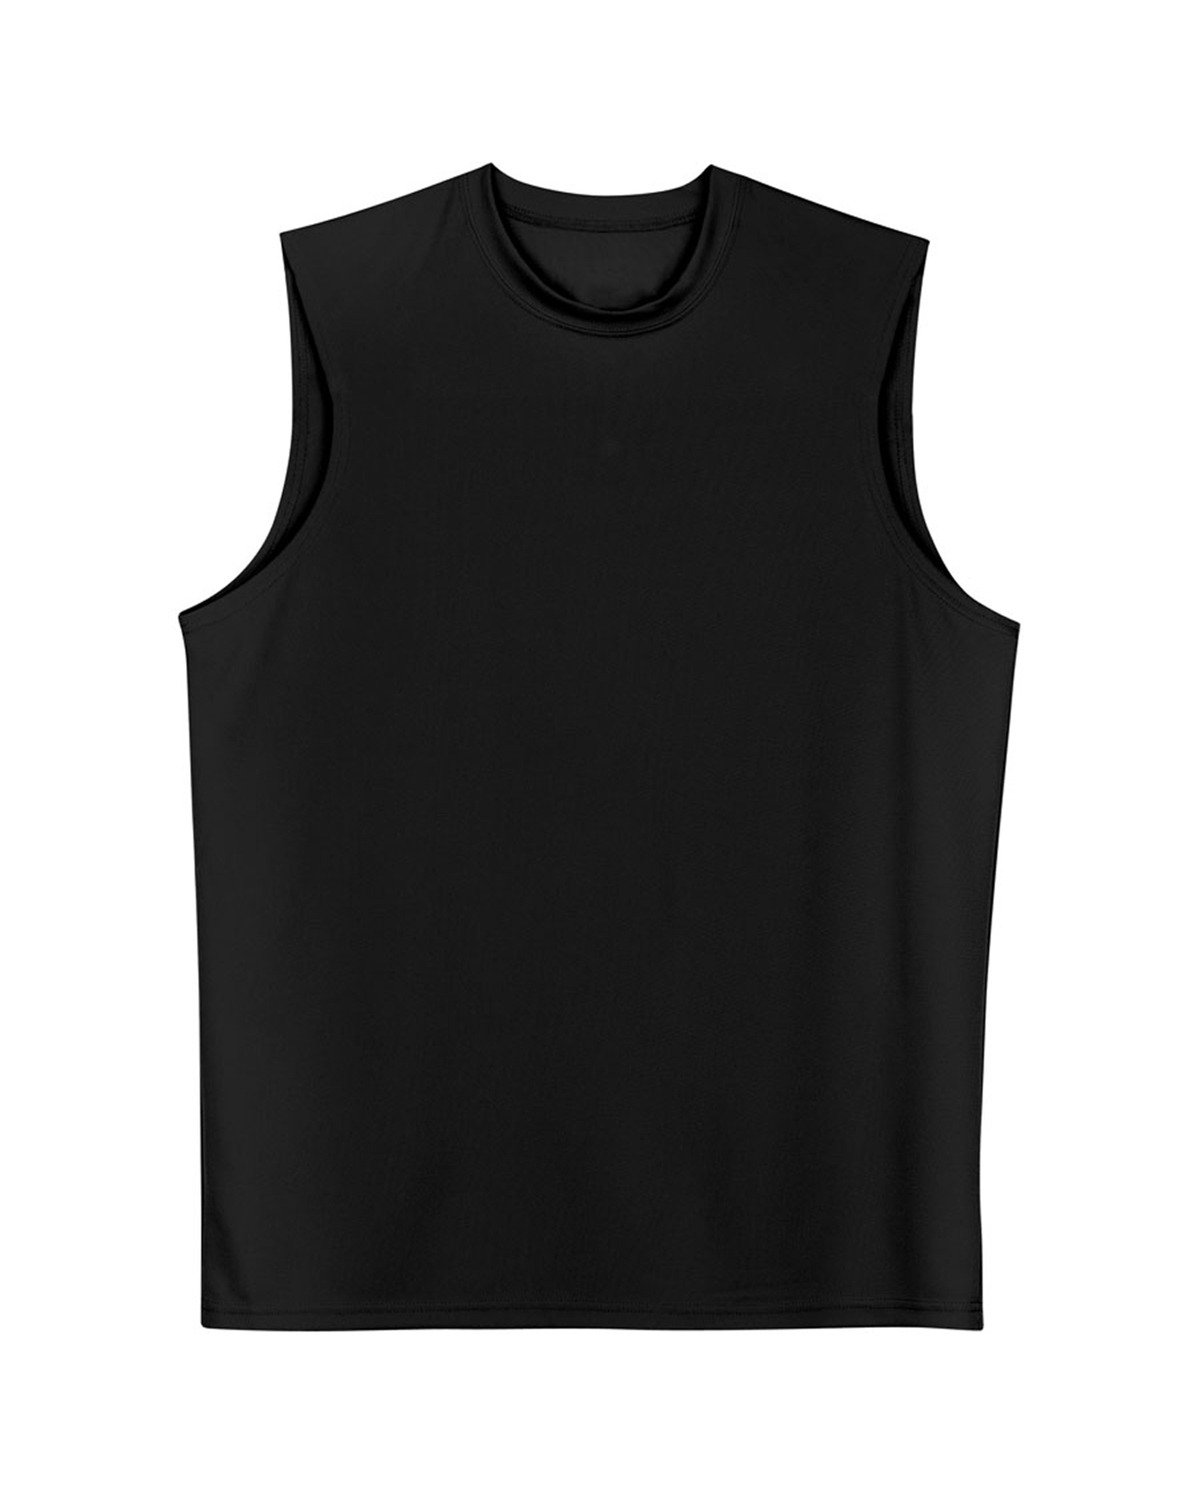 A4 Men's Cooling Performance Muscle T-Shirt BLACK